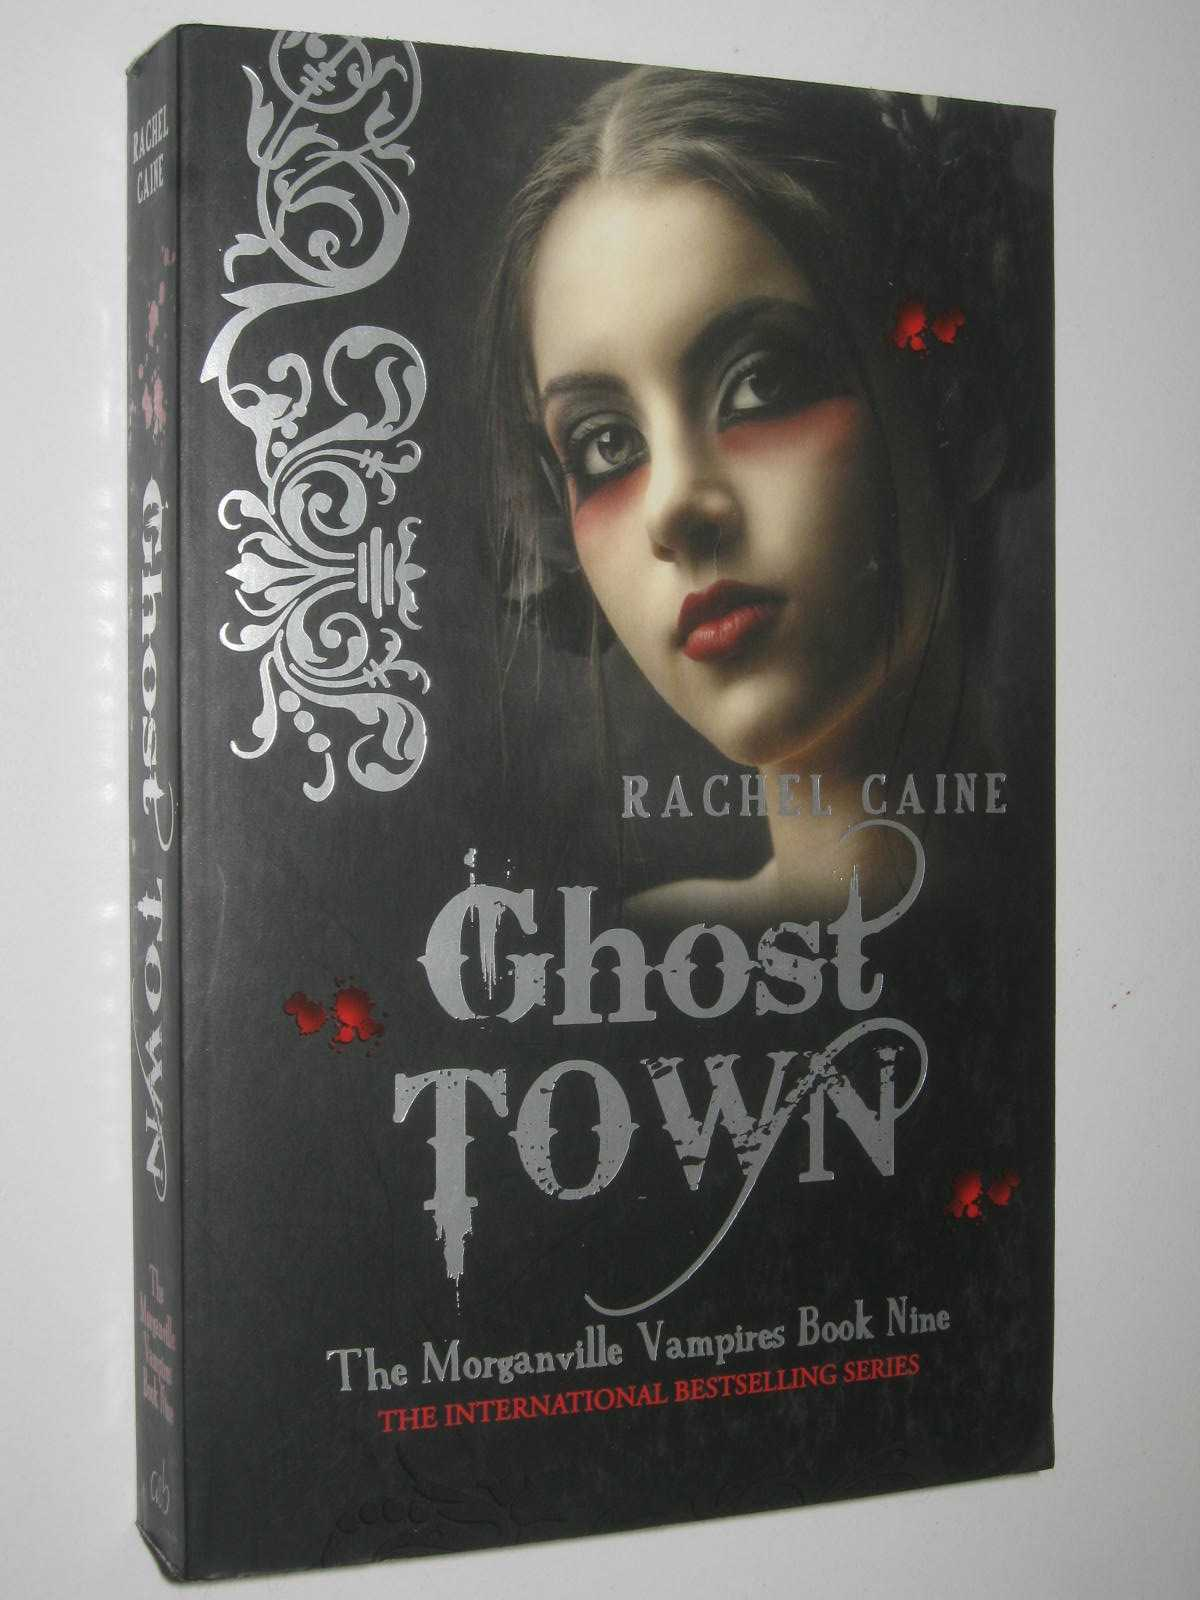 Image for Ghost Town - The Morgainville Vampires Series #9